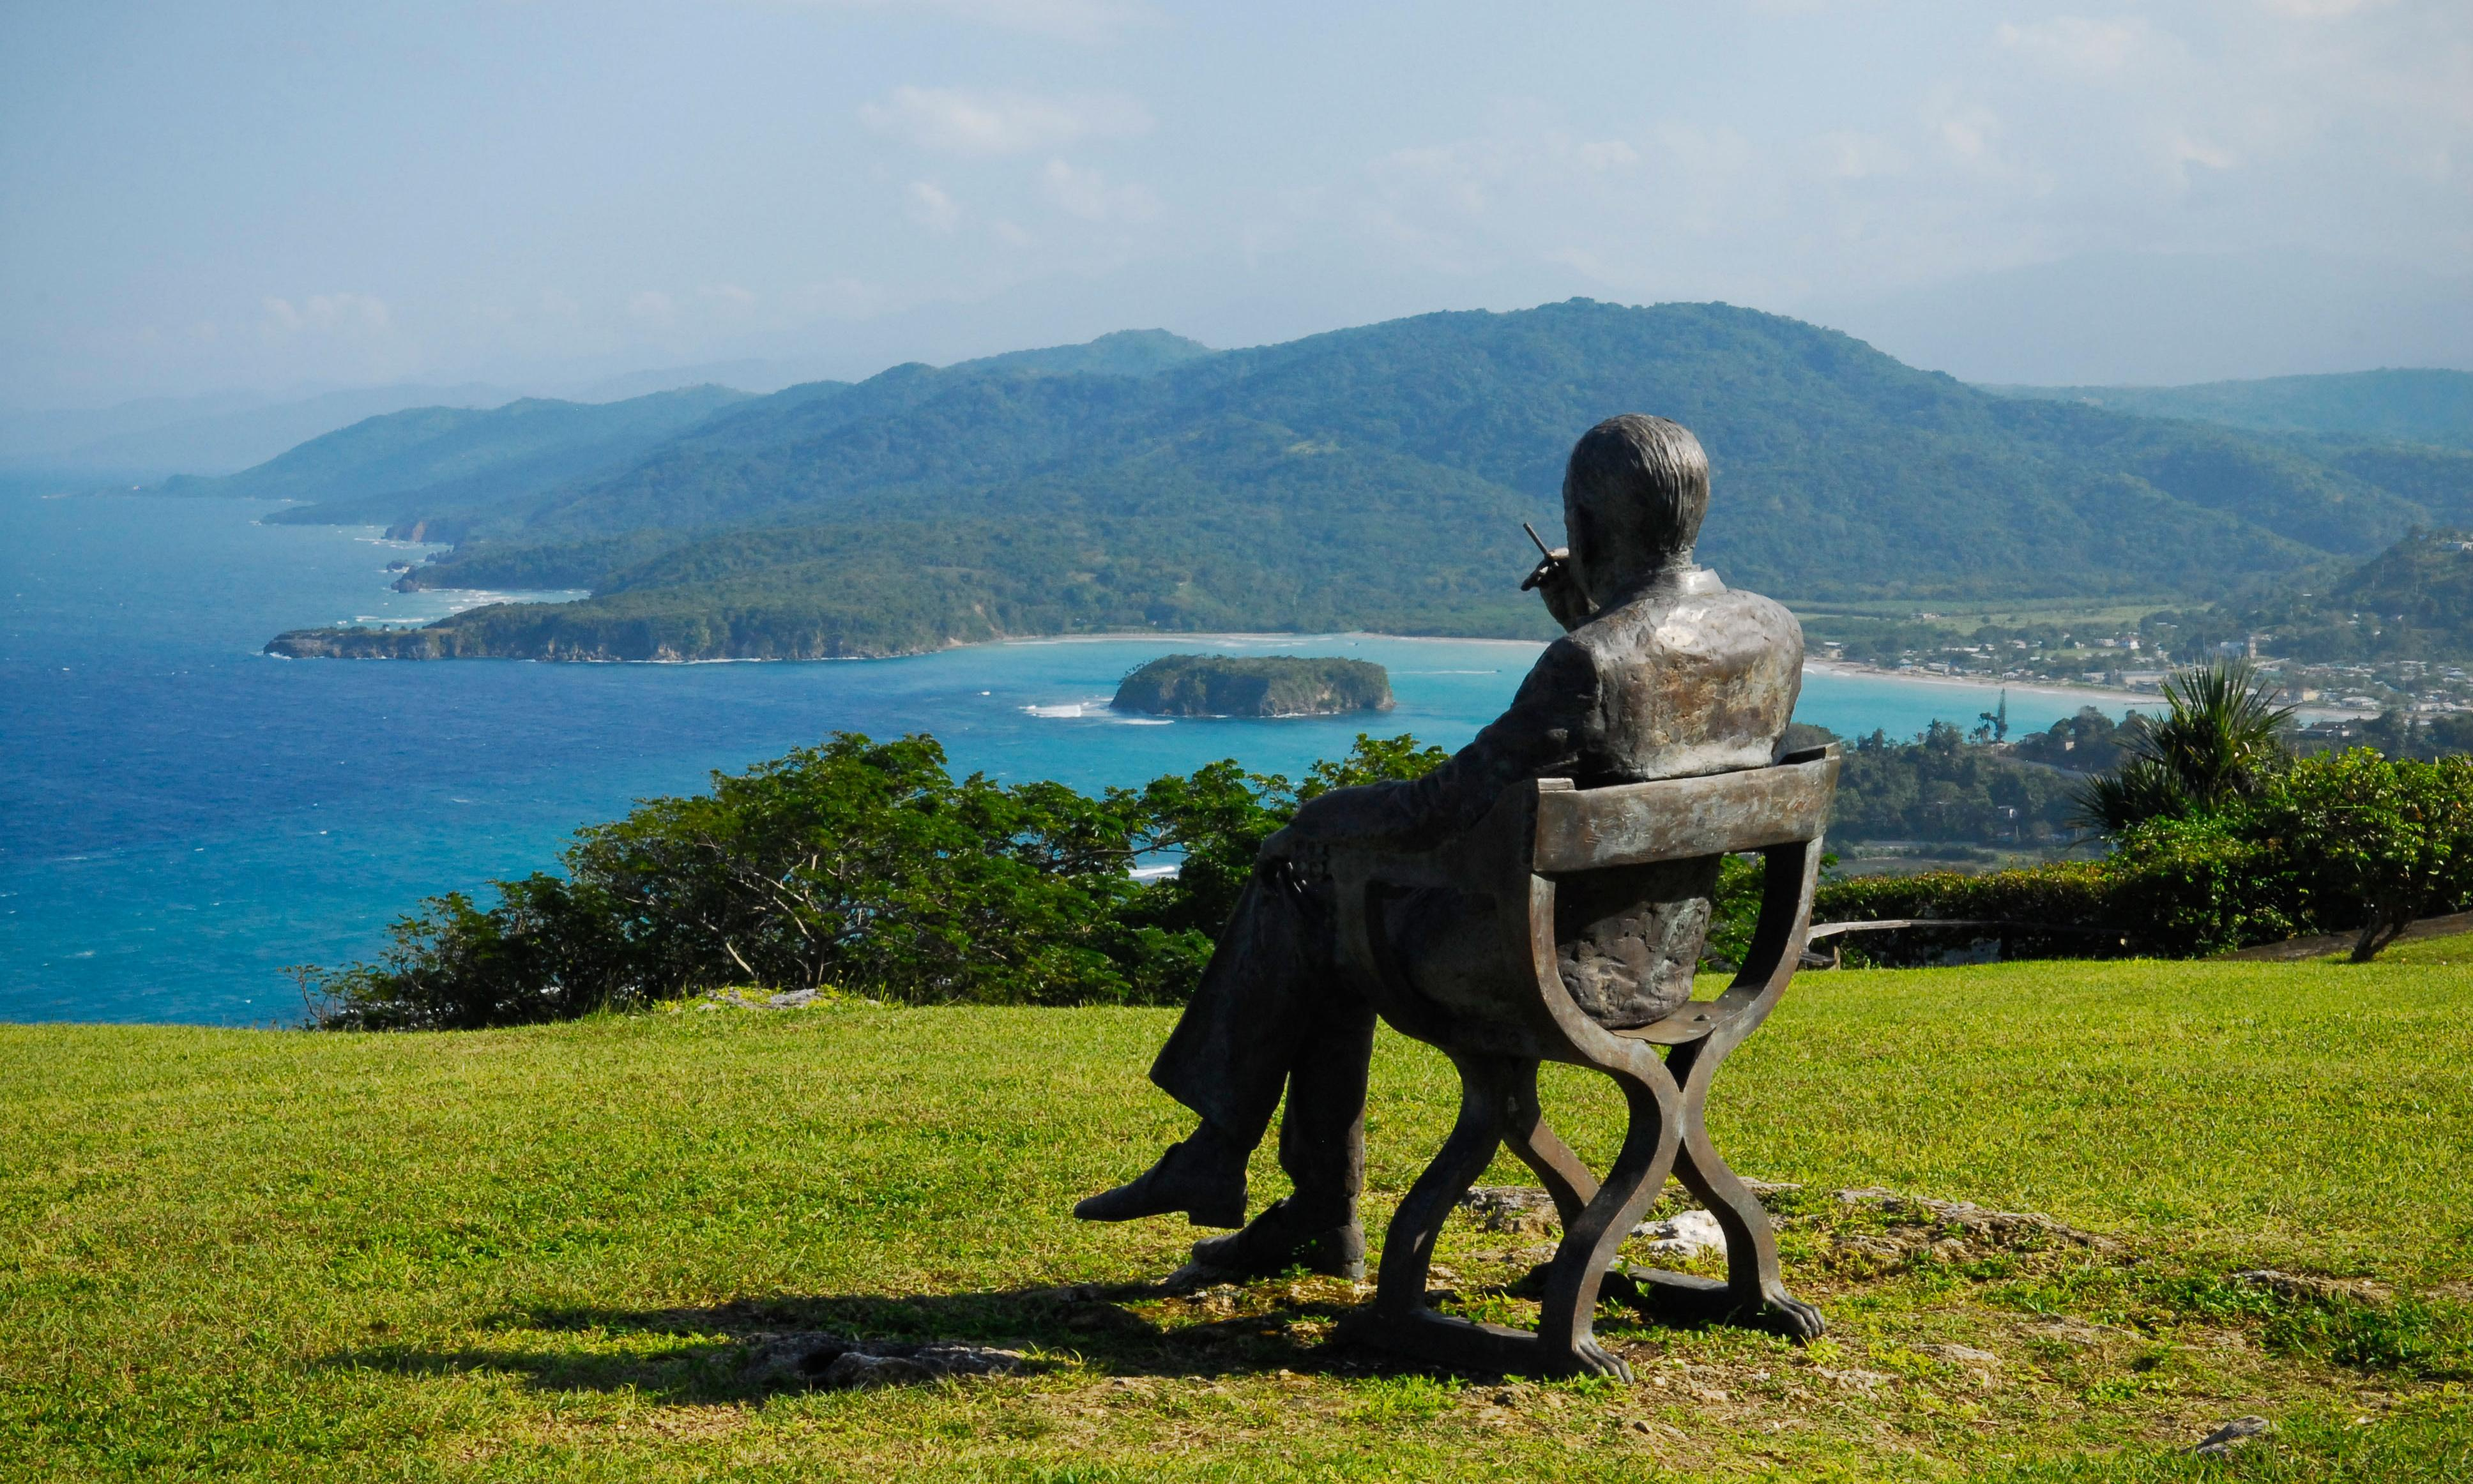 A local's guide to Jamaica: 10 top tips